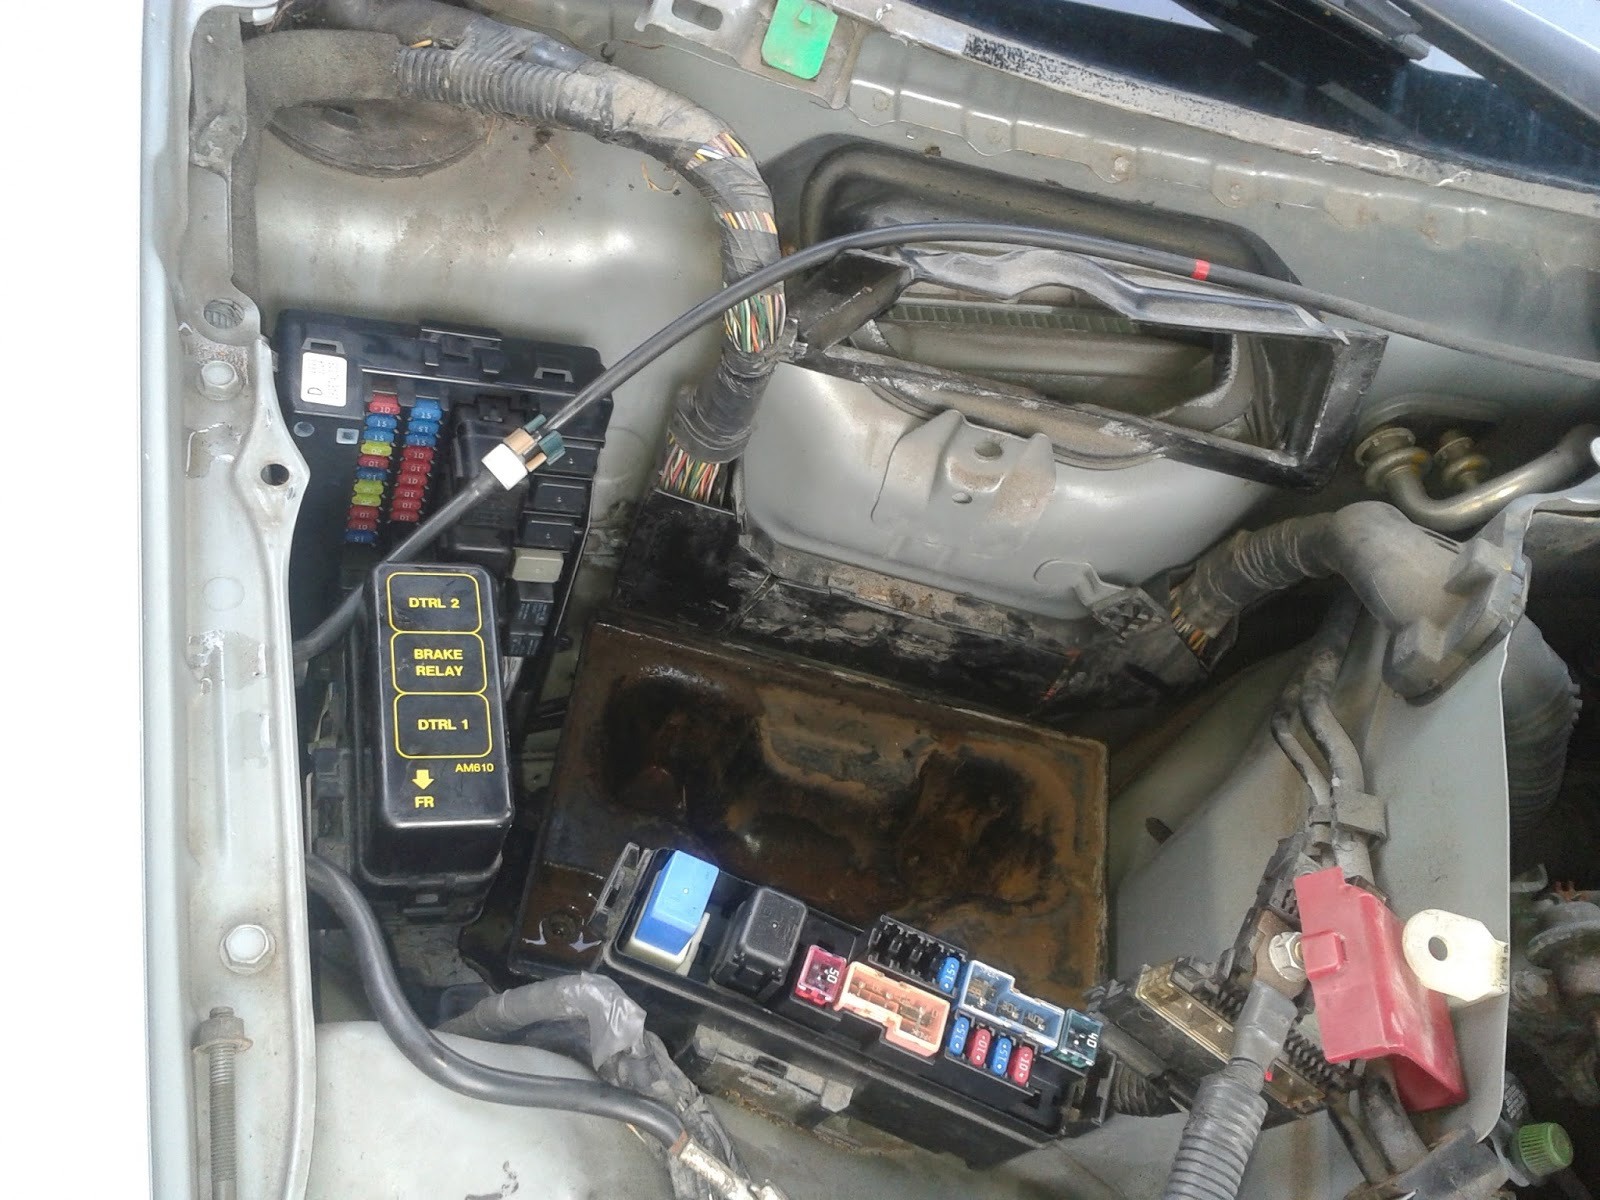 2015 05 27%2B18.55.50 zf inifiniti g35 2003 wet ipdm issue, how to fix it g35 fuse box at honlapkeszites.co